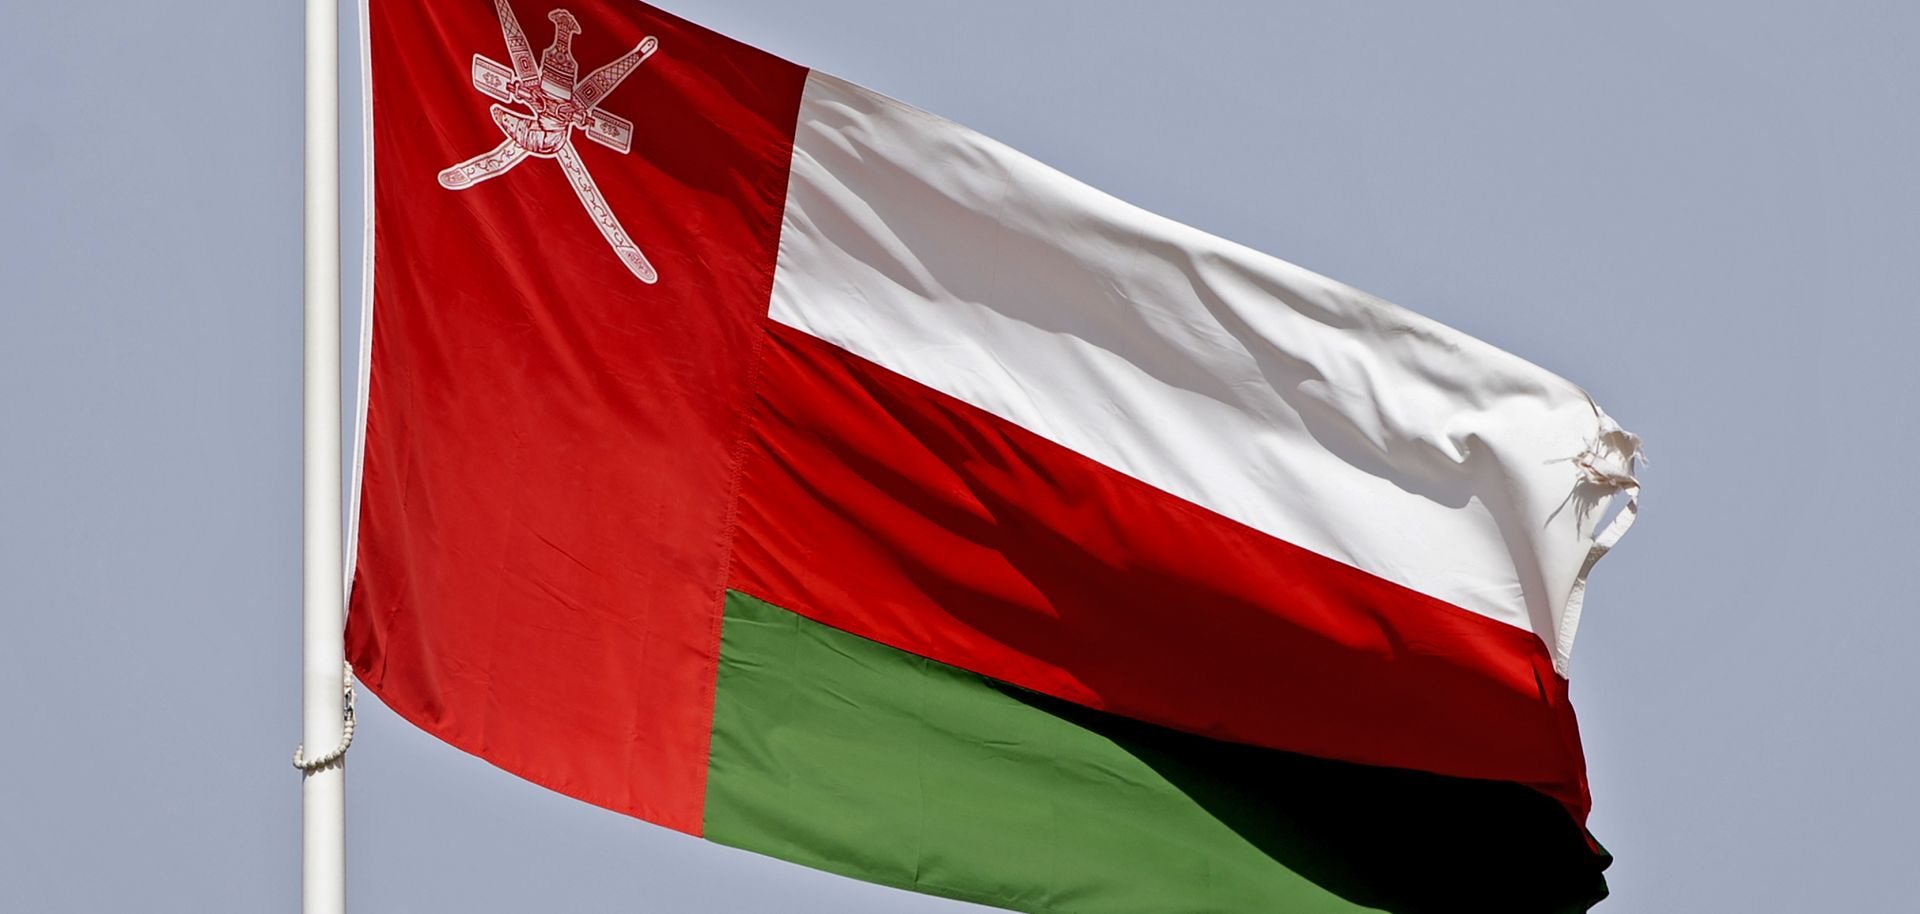 A picture taken on Sept. 15, 2020, shows the Omani national flag waving in Muscat.